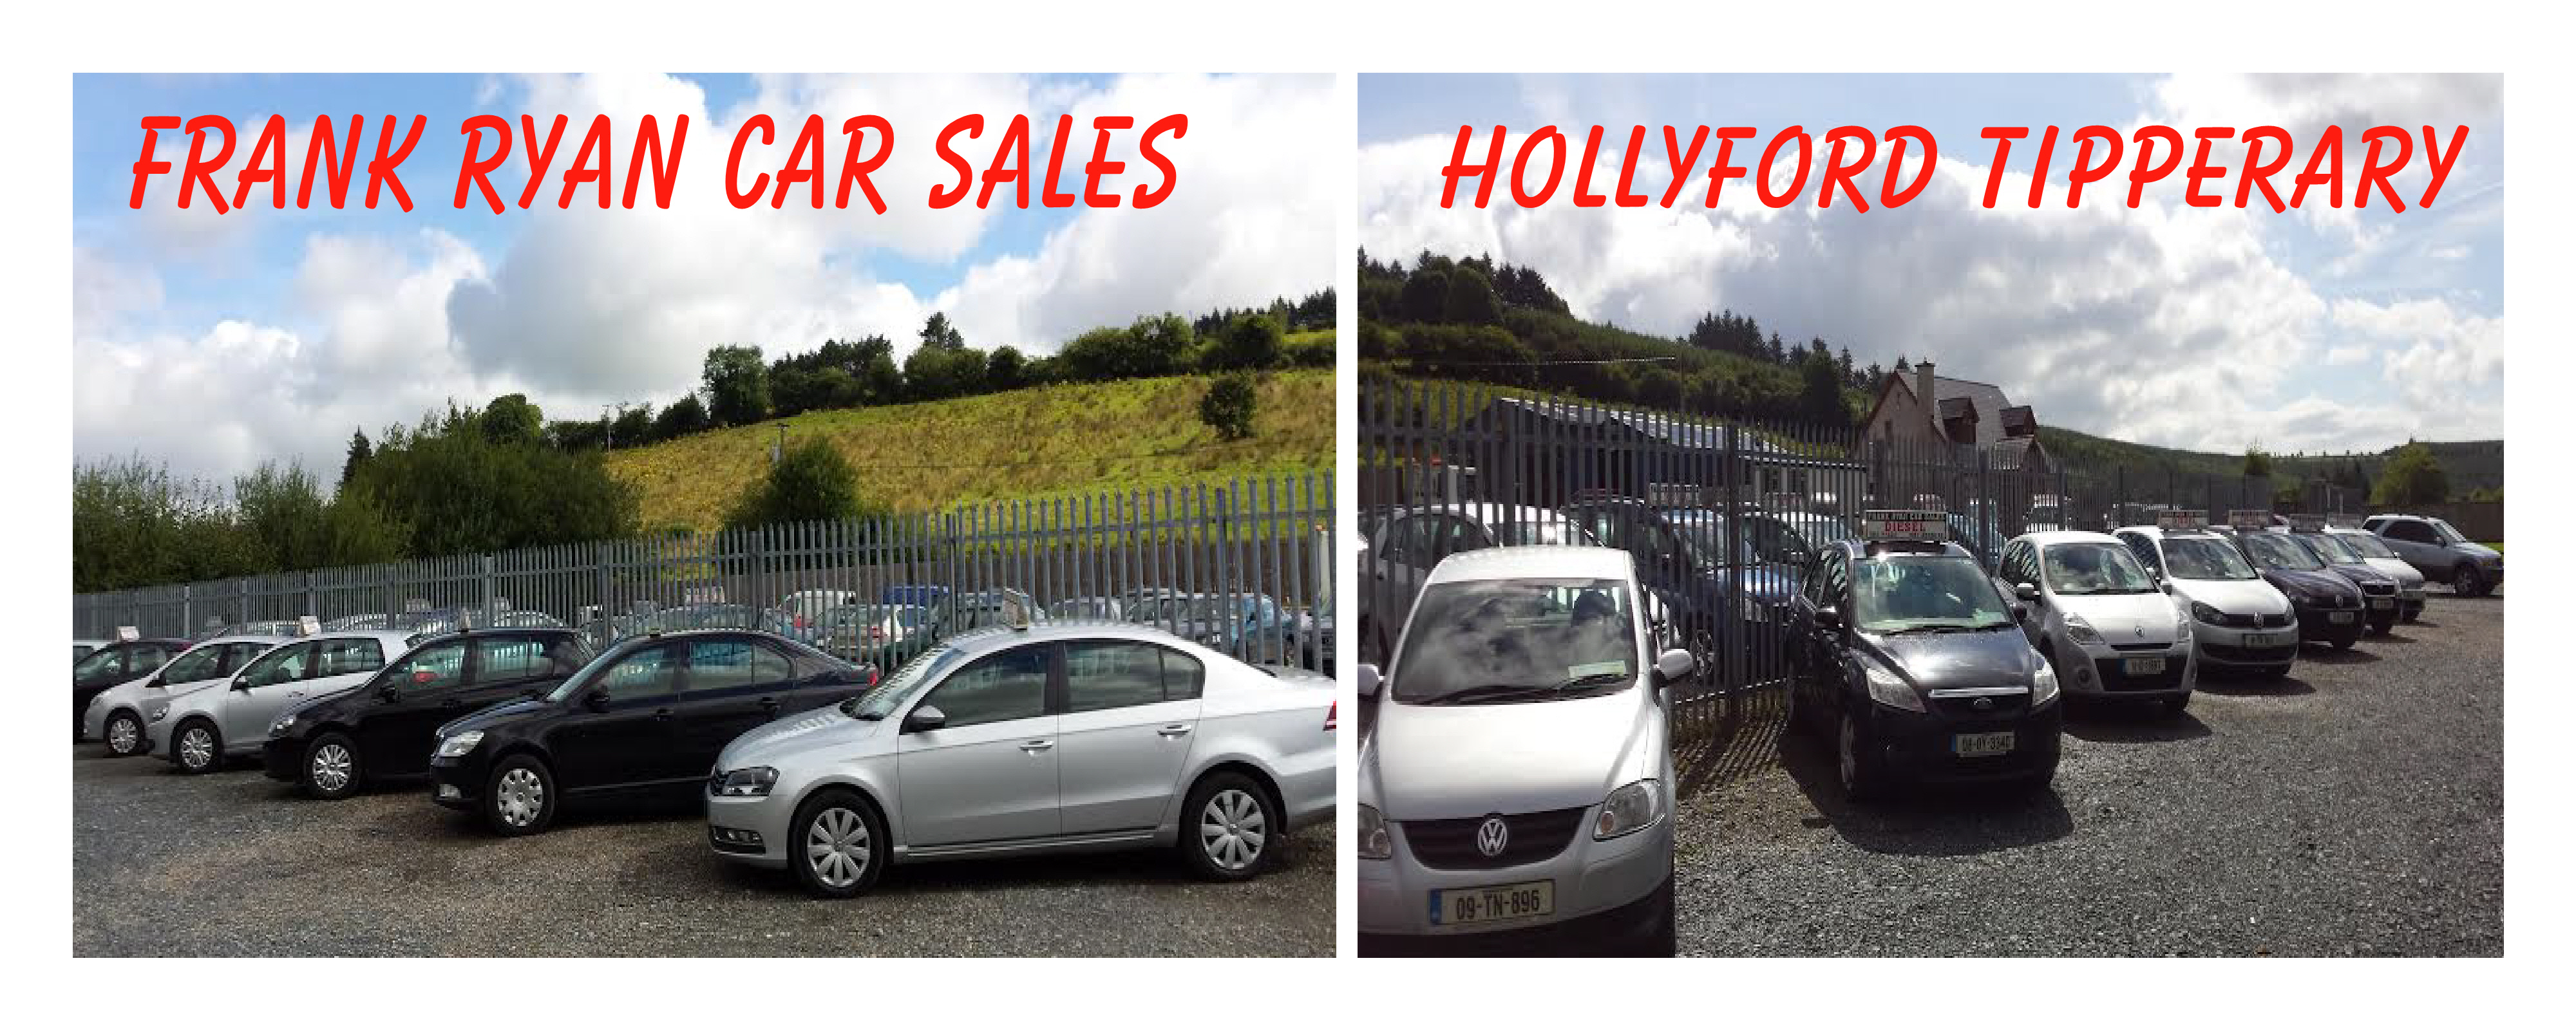 used cars the business is owned and operated by frank ryan who is available at all times to assist you with all aspects of your motoring requirements